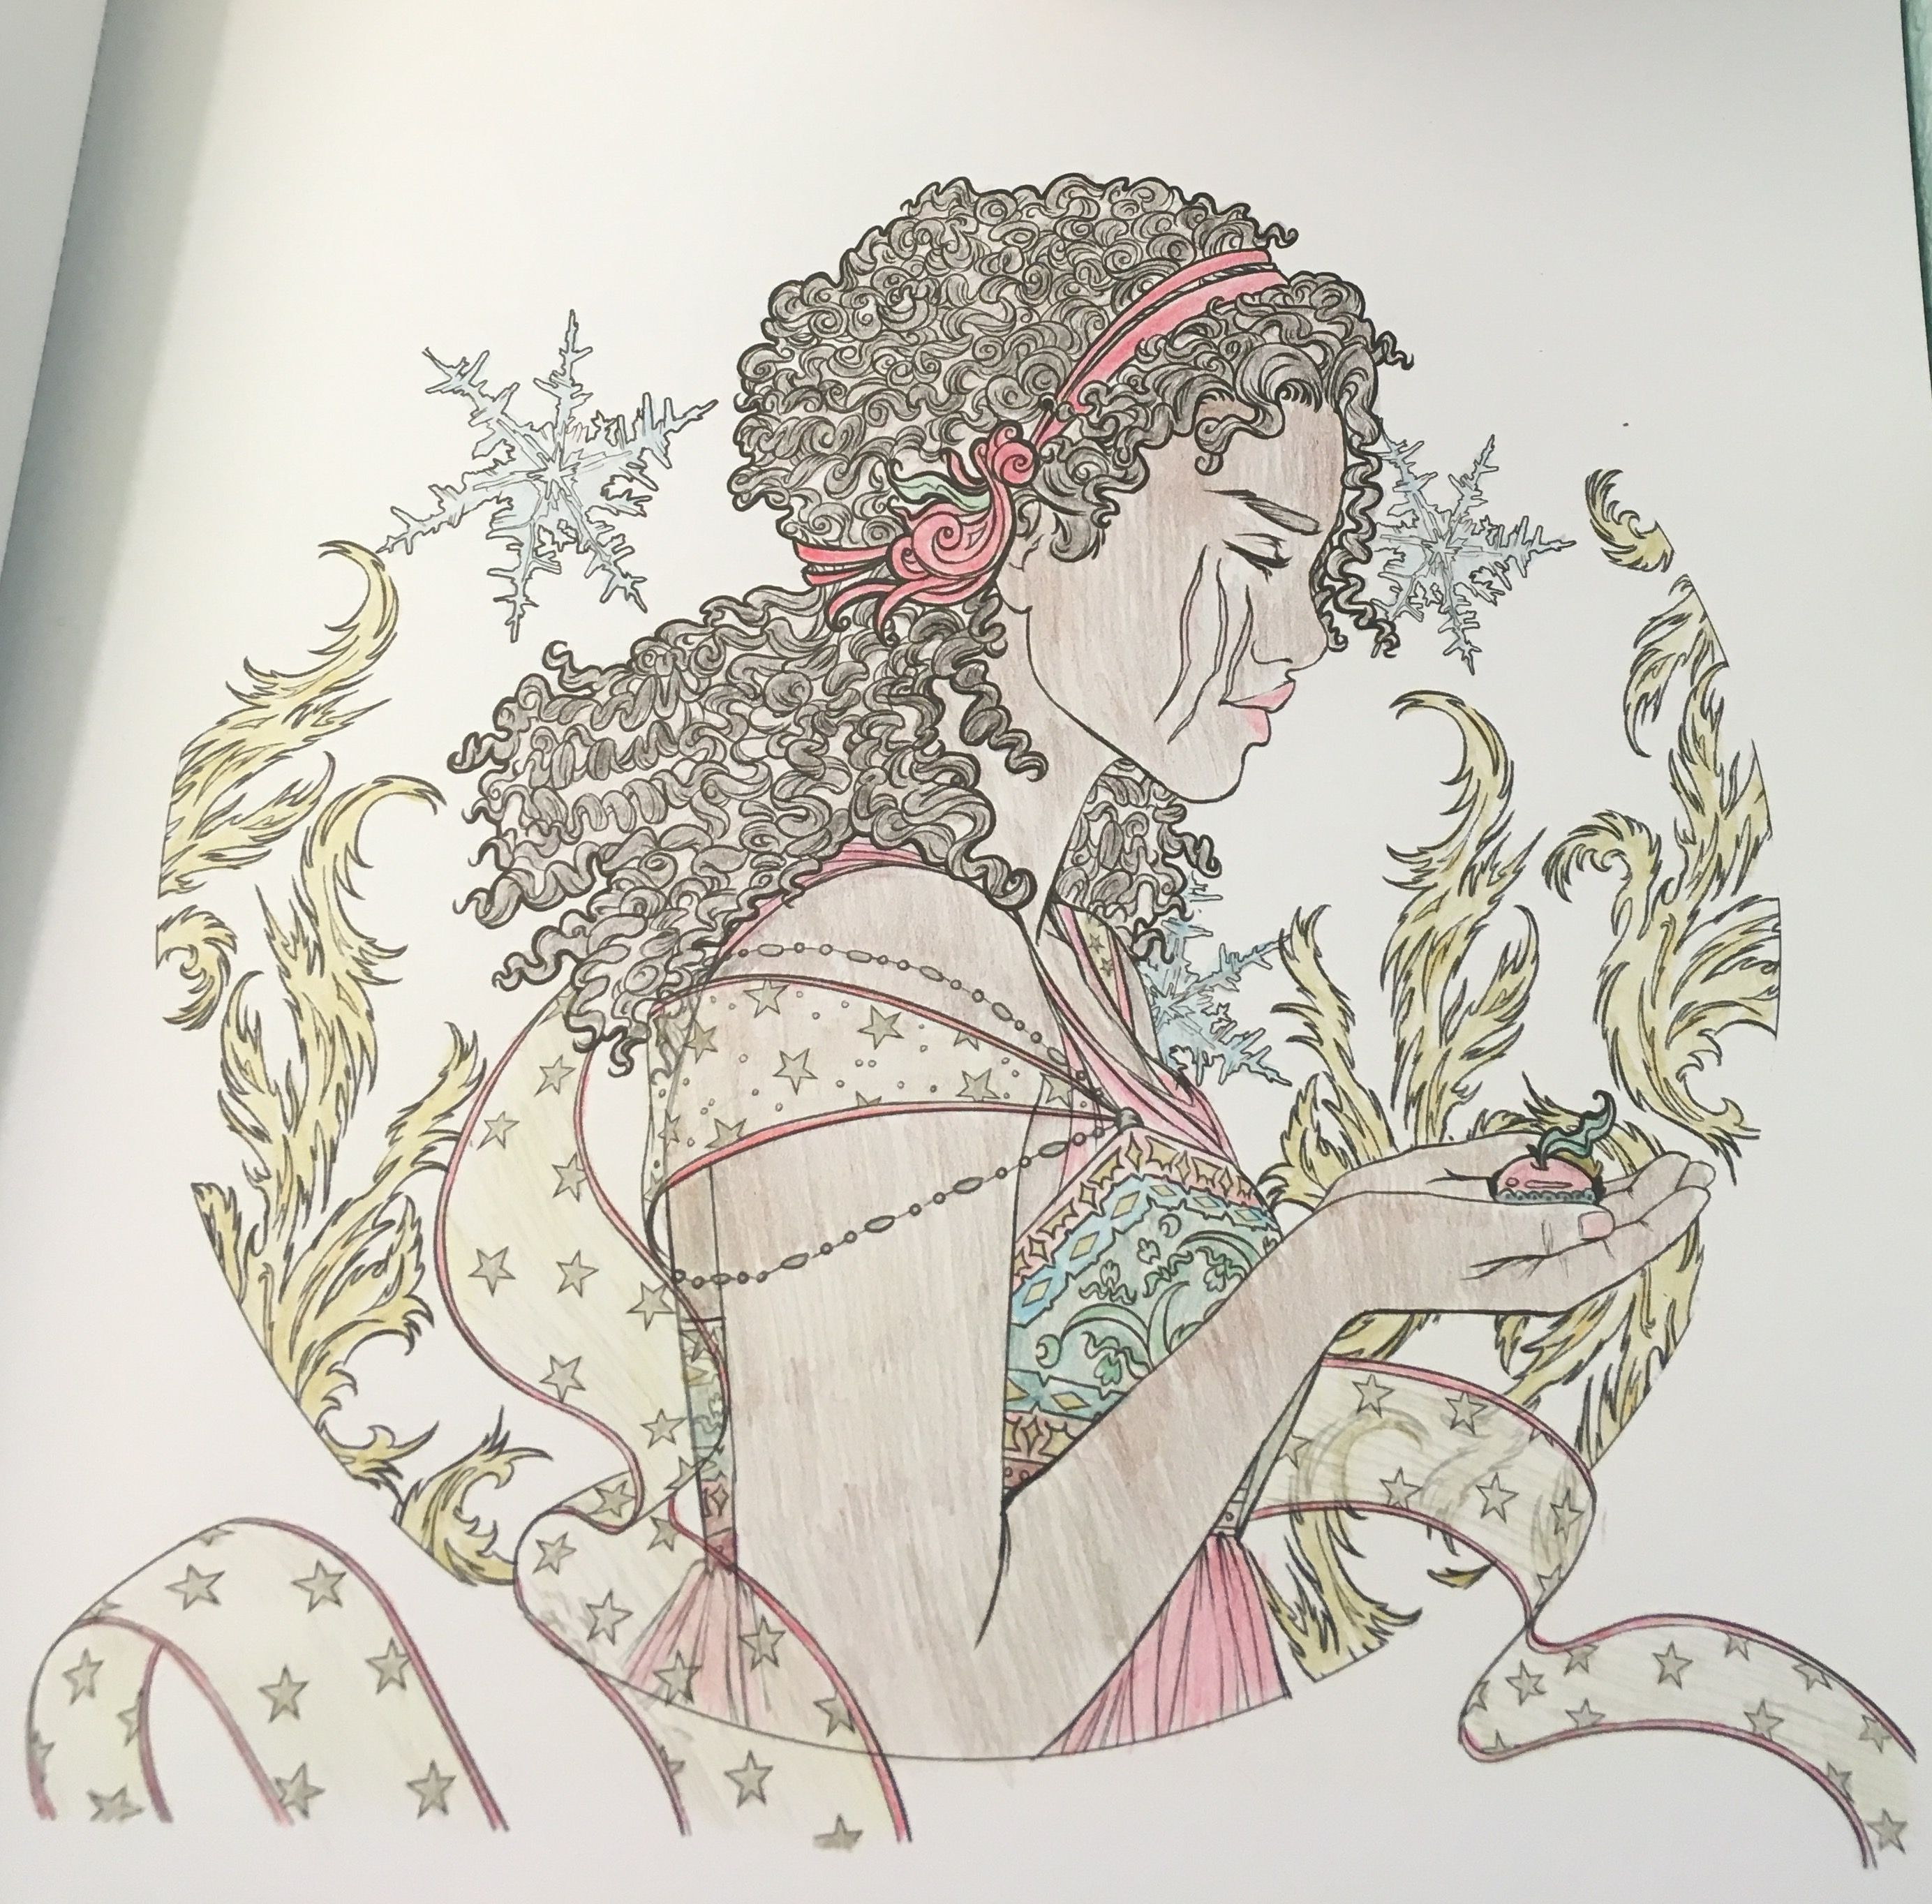 Winter From The Lunar Chronicles Coloring Book Once Upon A Time